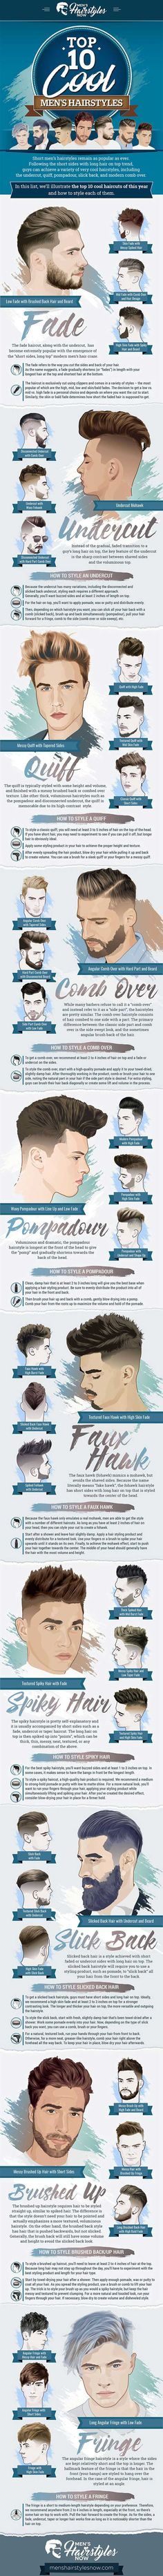 The world of men's hairstyles is booming with new possibilities. Creative barbers, hipsters, and